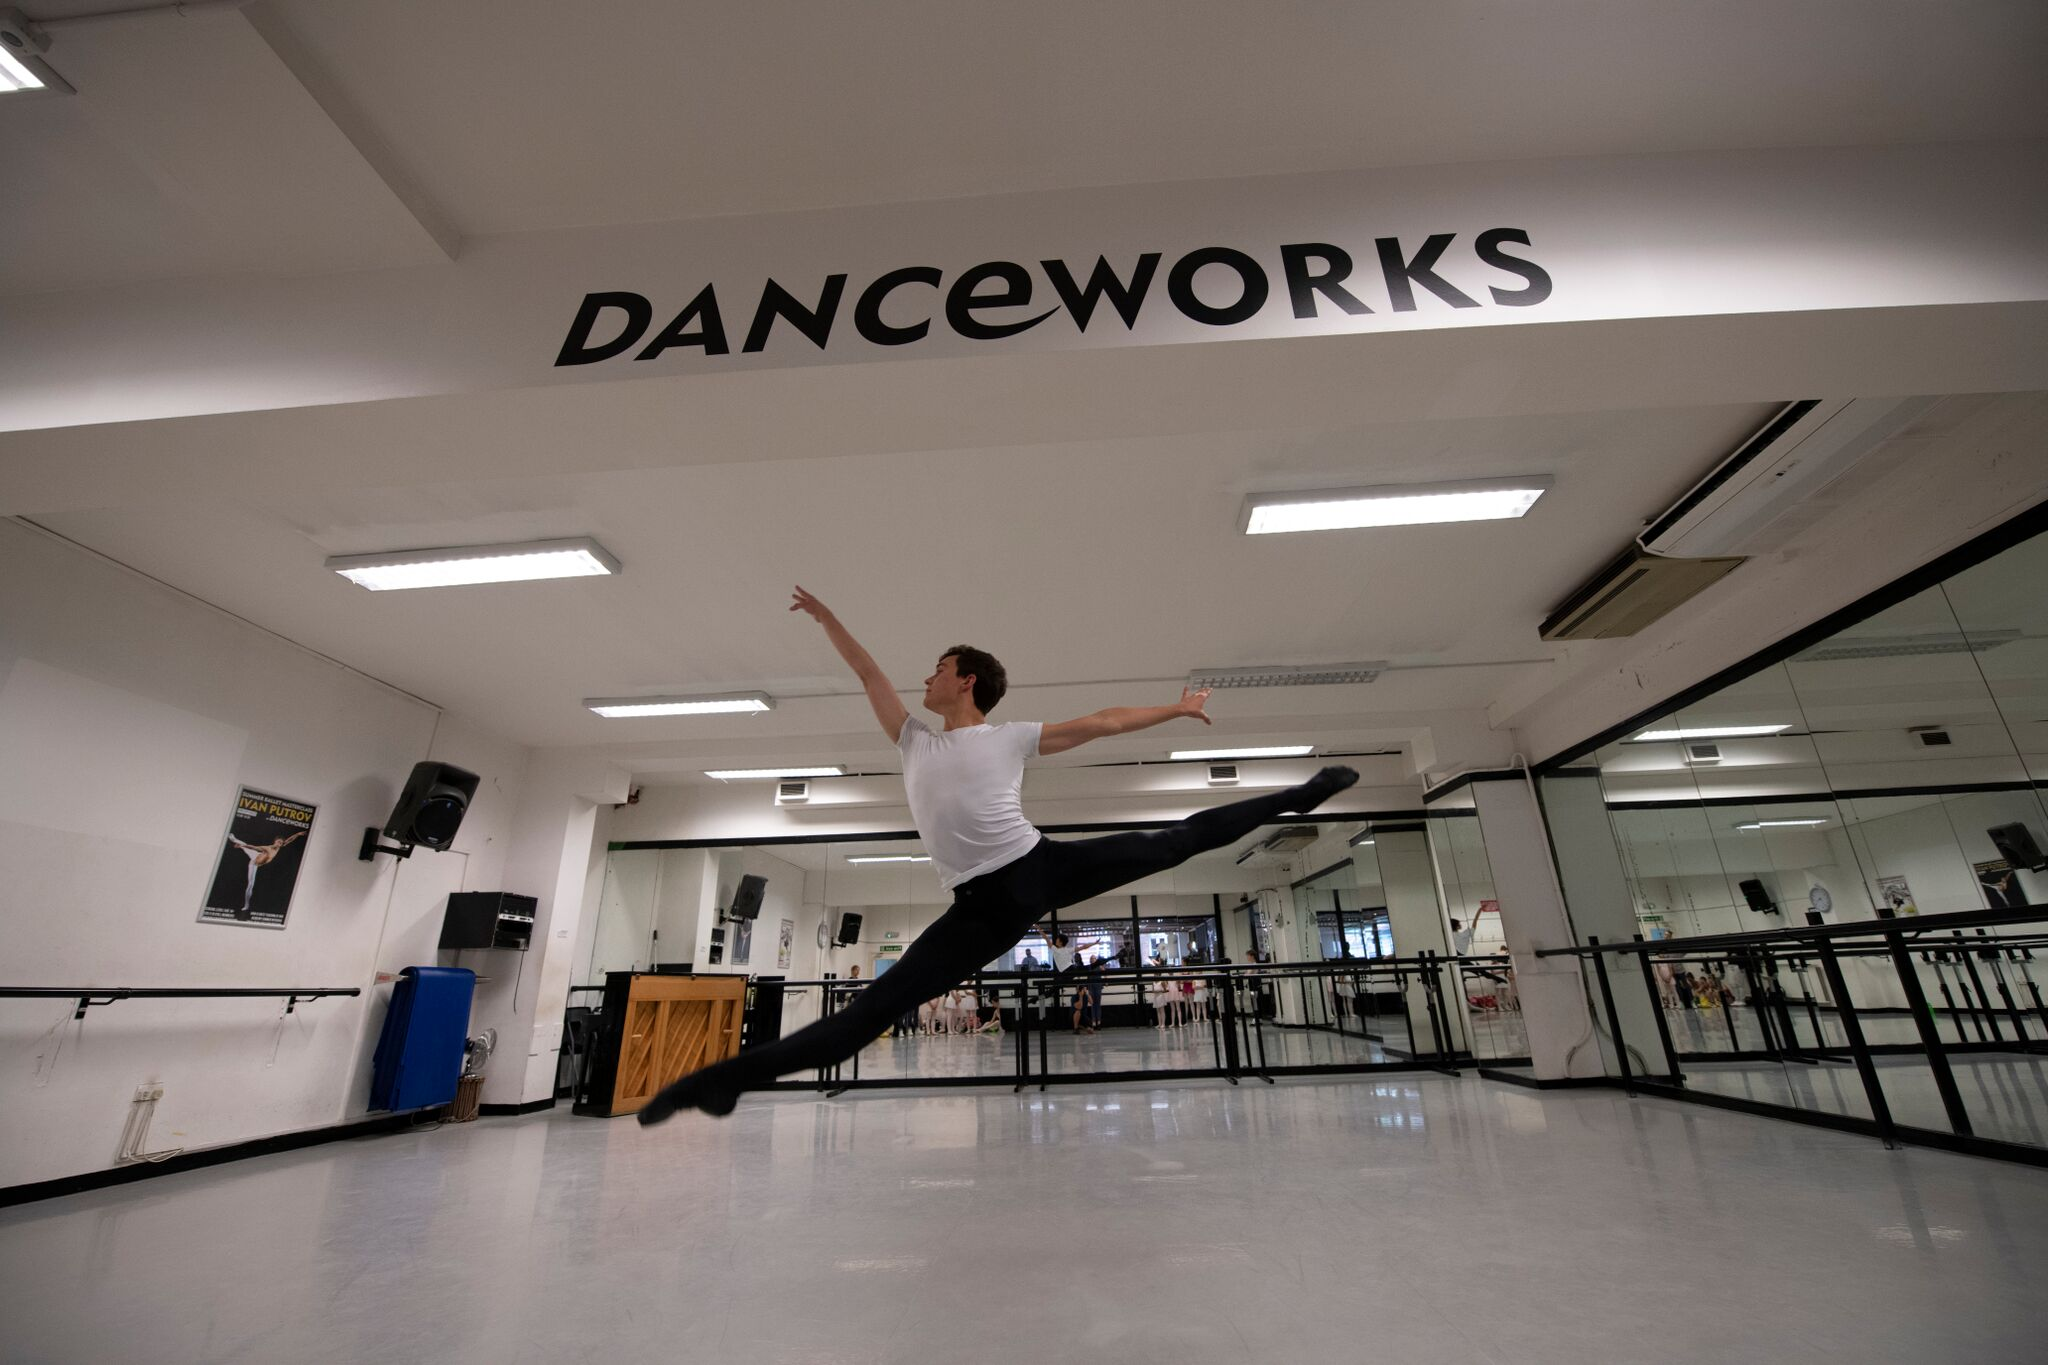 Danceworks standby dance and ballet studio bookings in Central London